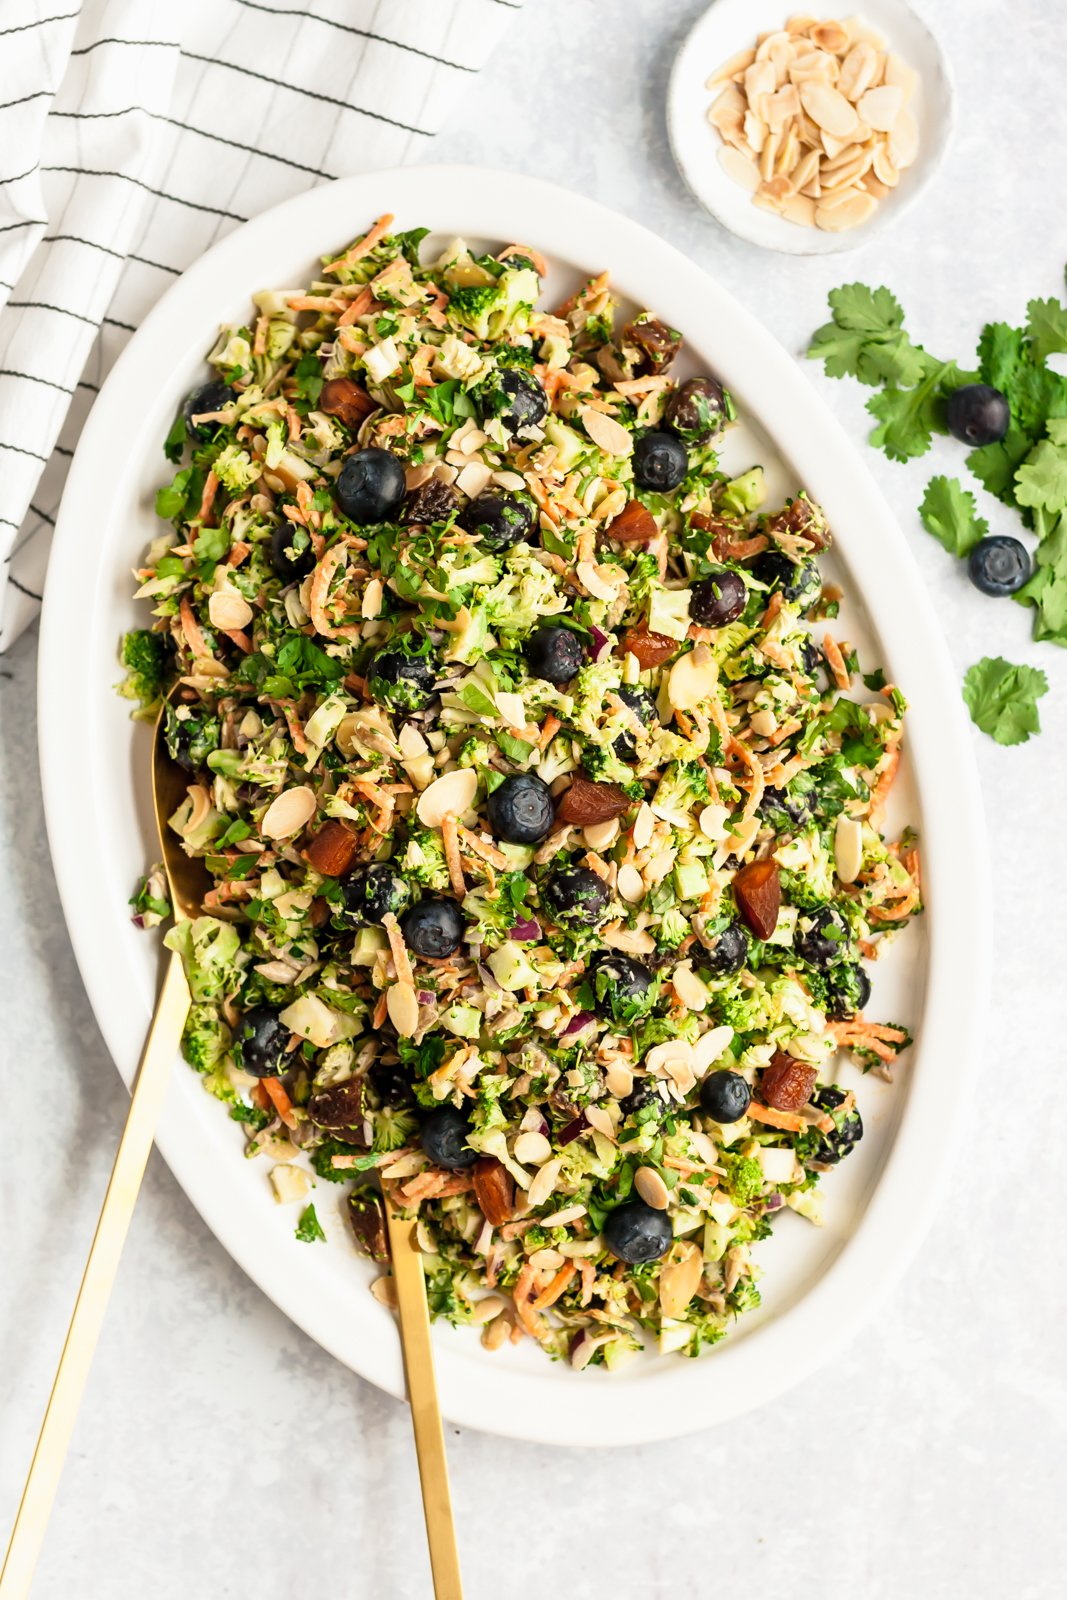 healthy broccoli salad with blueberries and toasted almonds on a platter